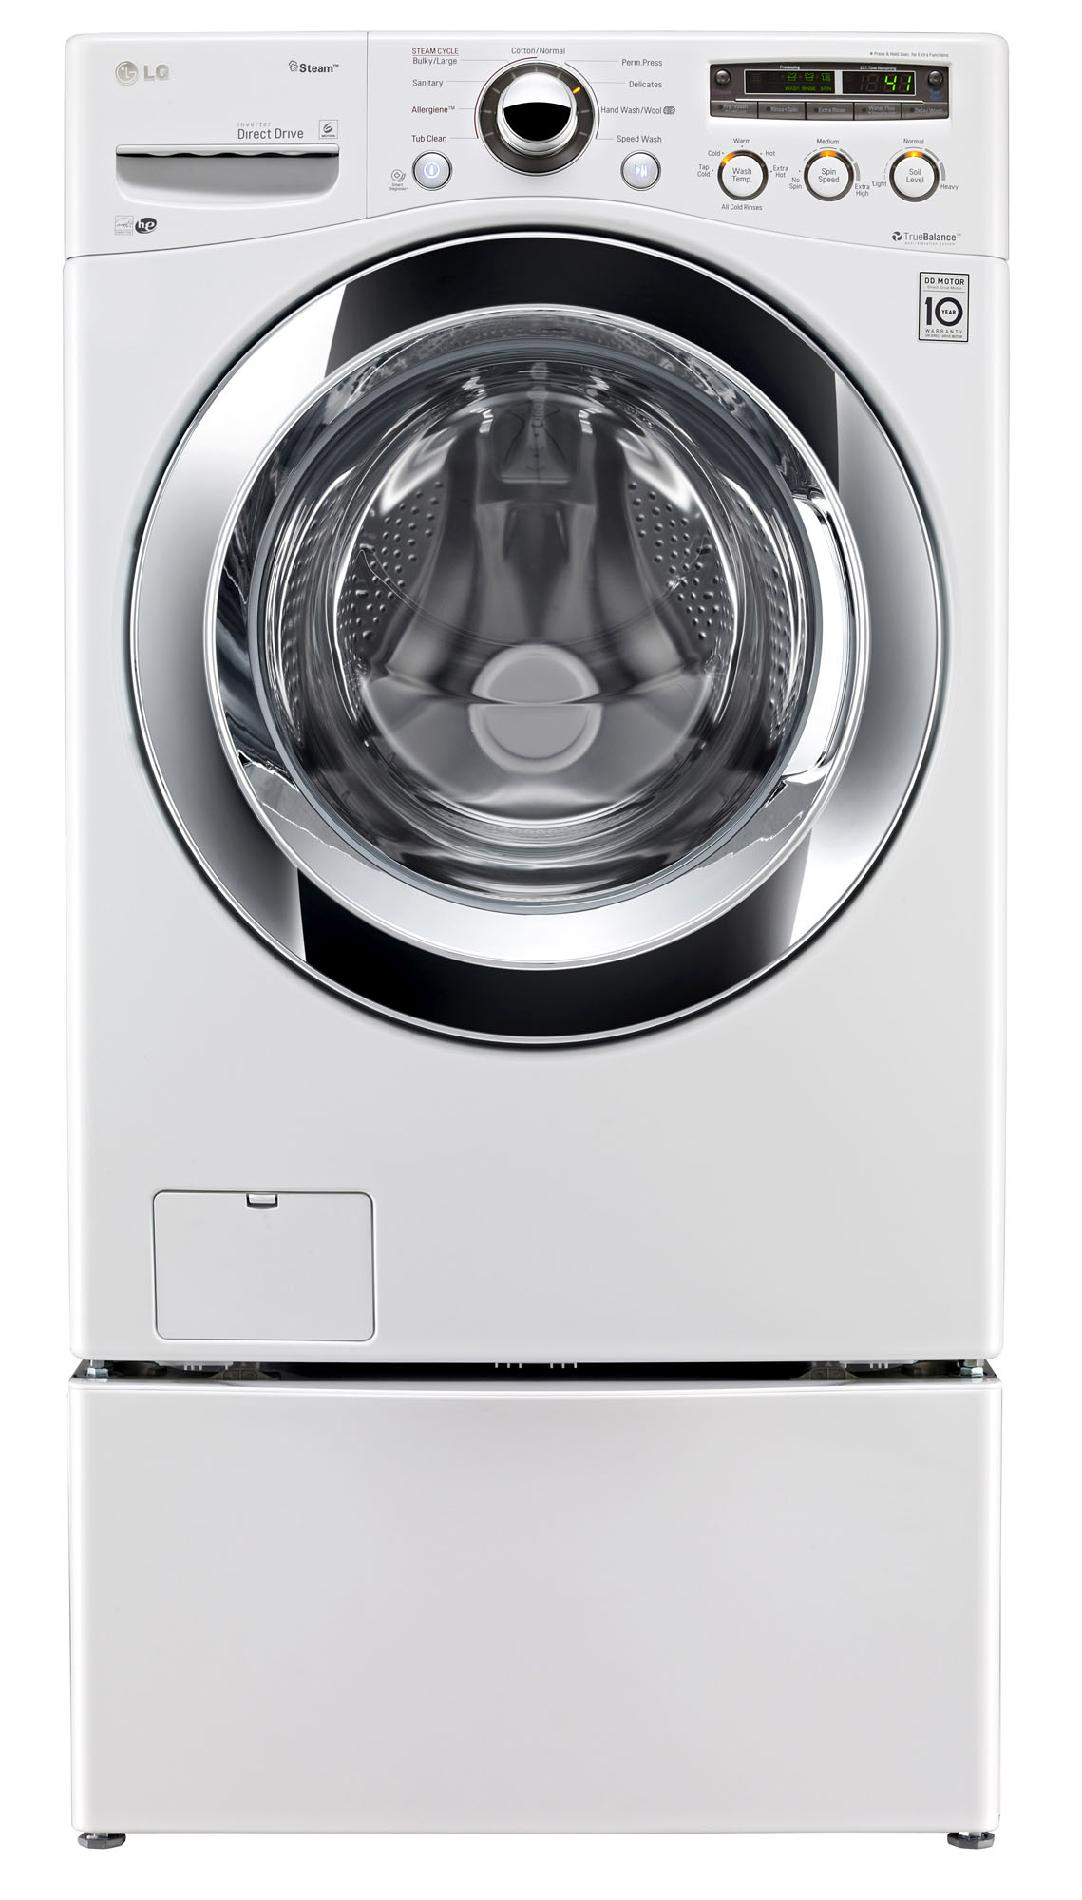 LG 4.0 cu. ft. Front-Load Washer w/ Steam™ Technology - White